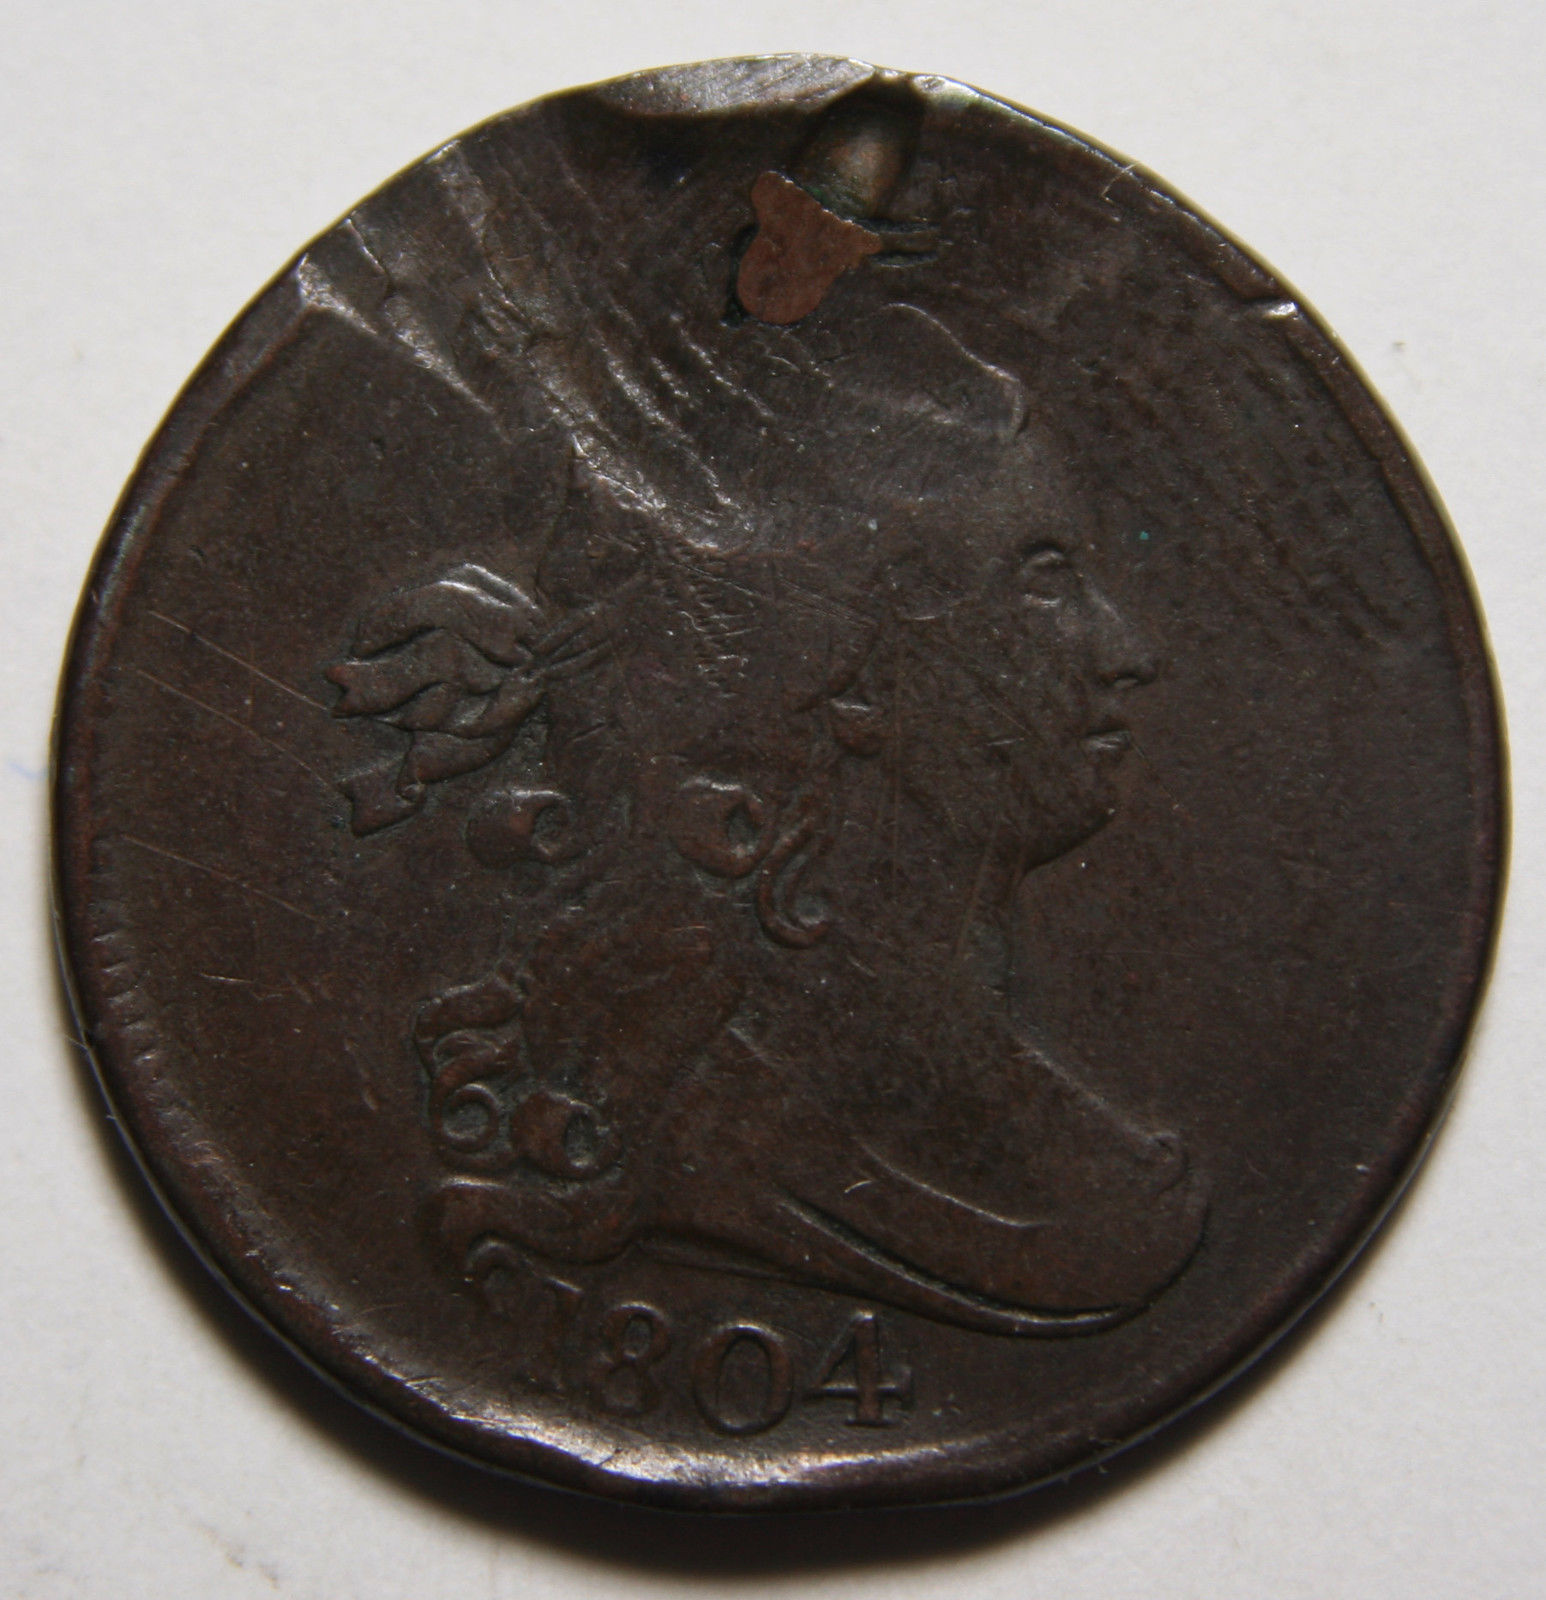 1804 Crosslet 4 Draped Bust Half Cent 1/2 Coin Lot # MZ 3449